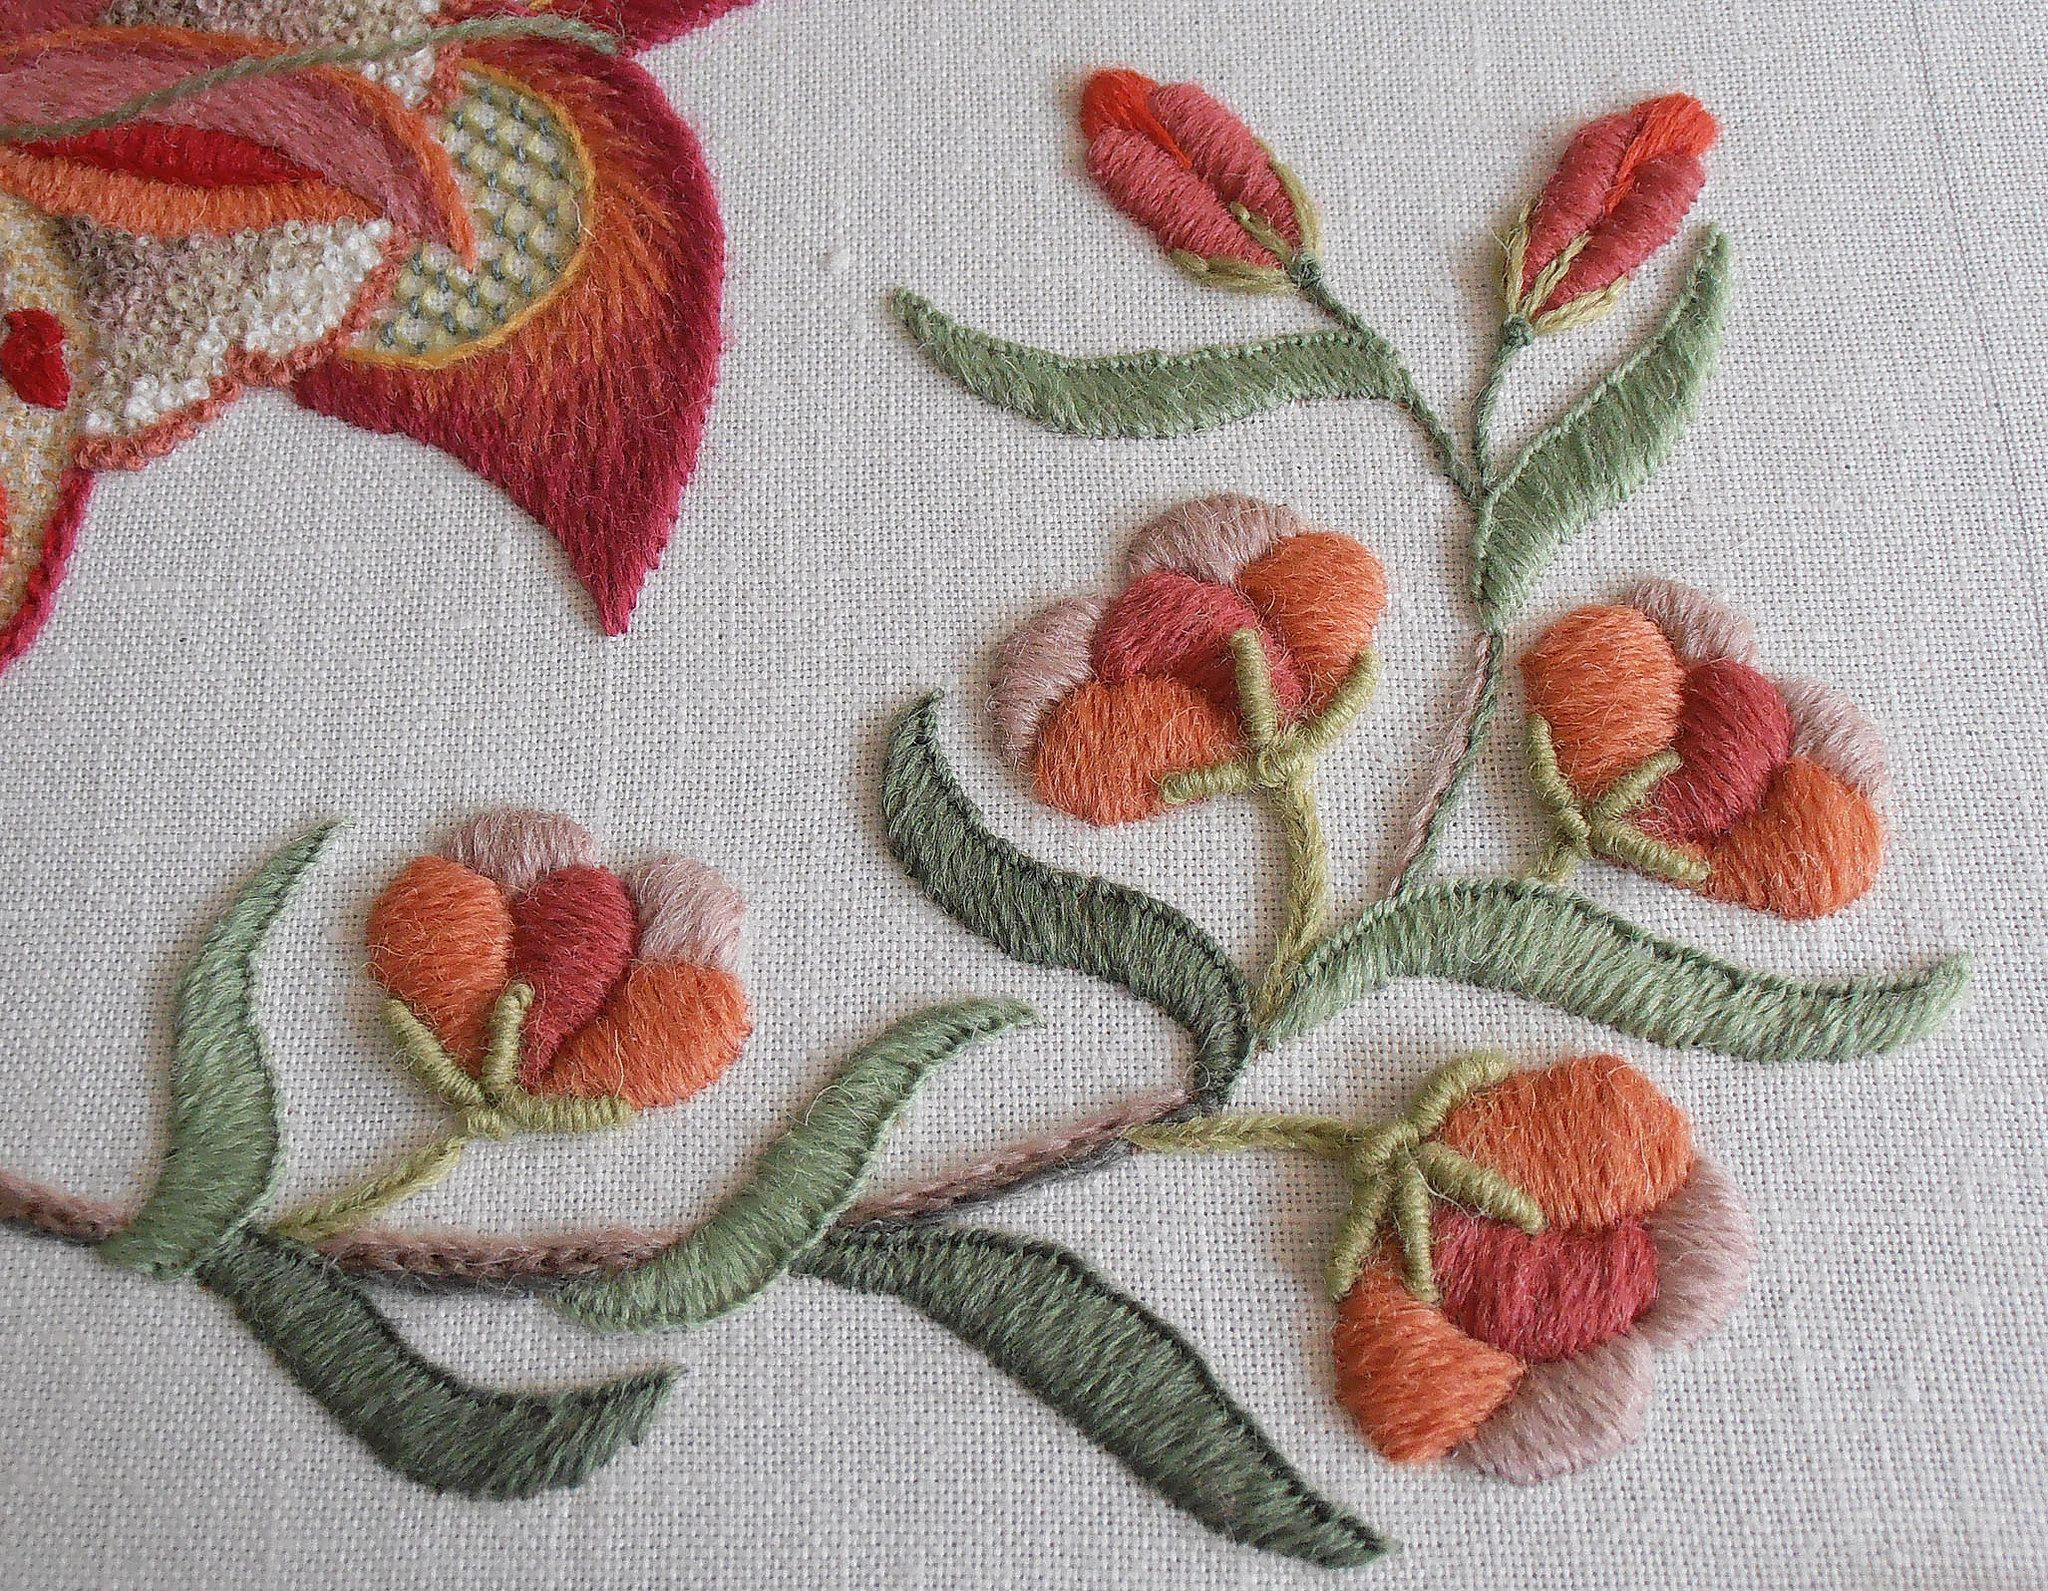 Crewel embroidery satin stitch and